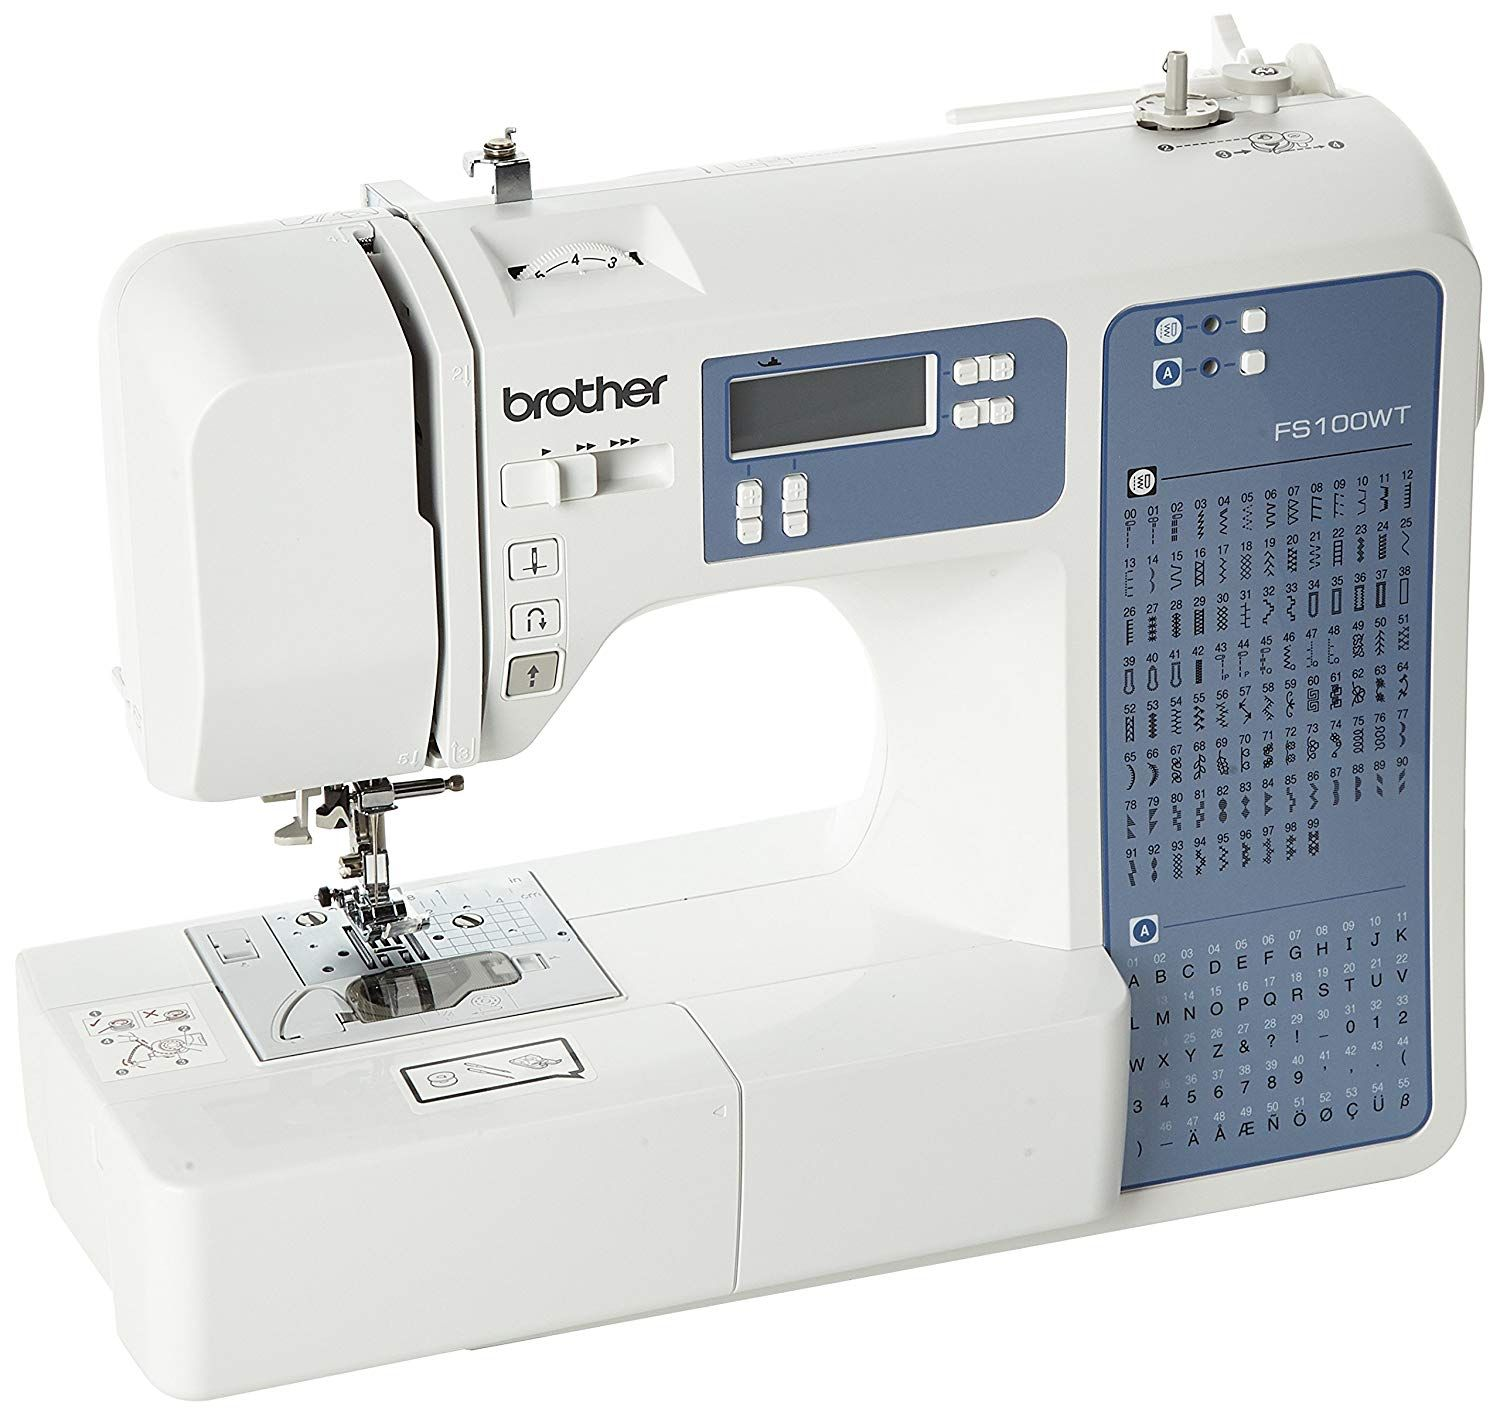 Brother Fs100wt Free Motion Embroidery Sewing And Quilting Machine White Amazon Co Machine Quilting Free Motion Embroidery Brother Sewing Machines